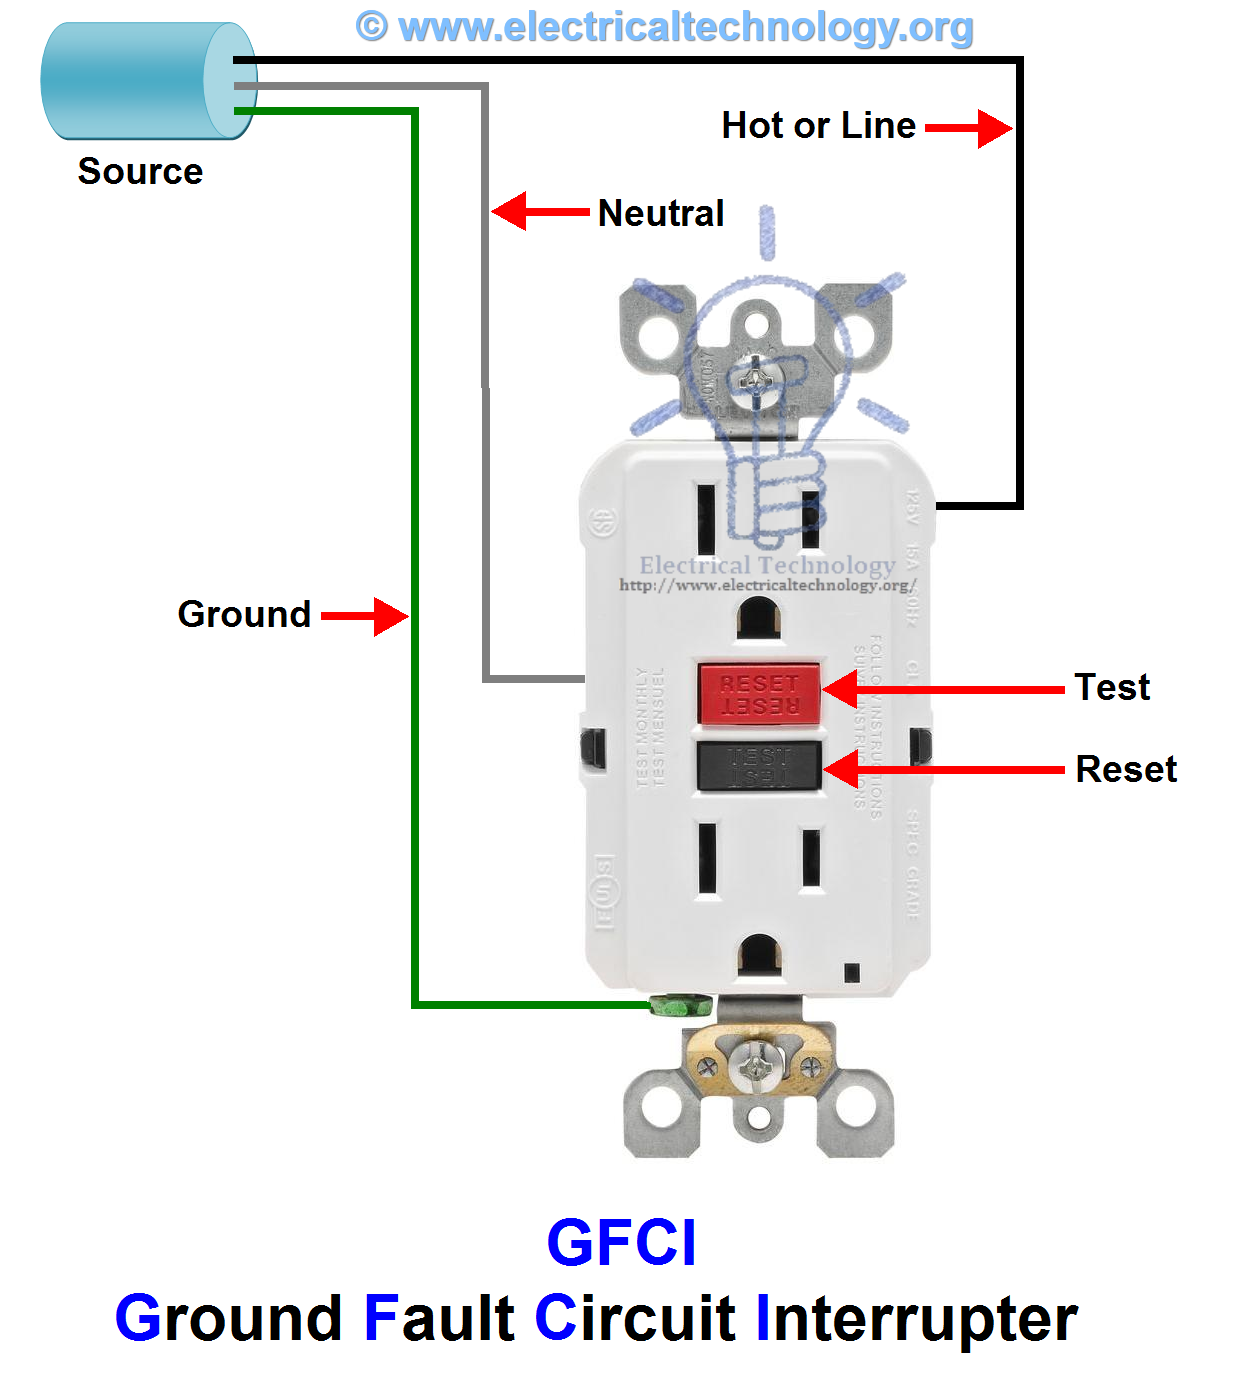 small resolution of gfci ground fault circuit interrupter types working ground fault interrupter circuit diagram can39t reset a gfci outlet